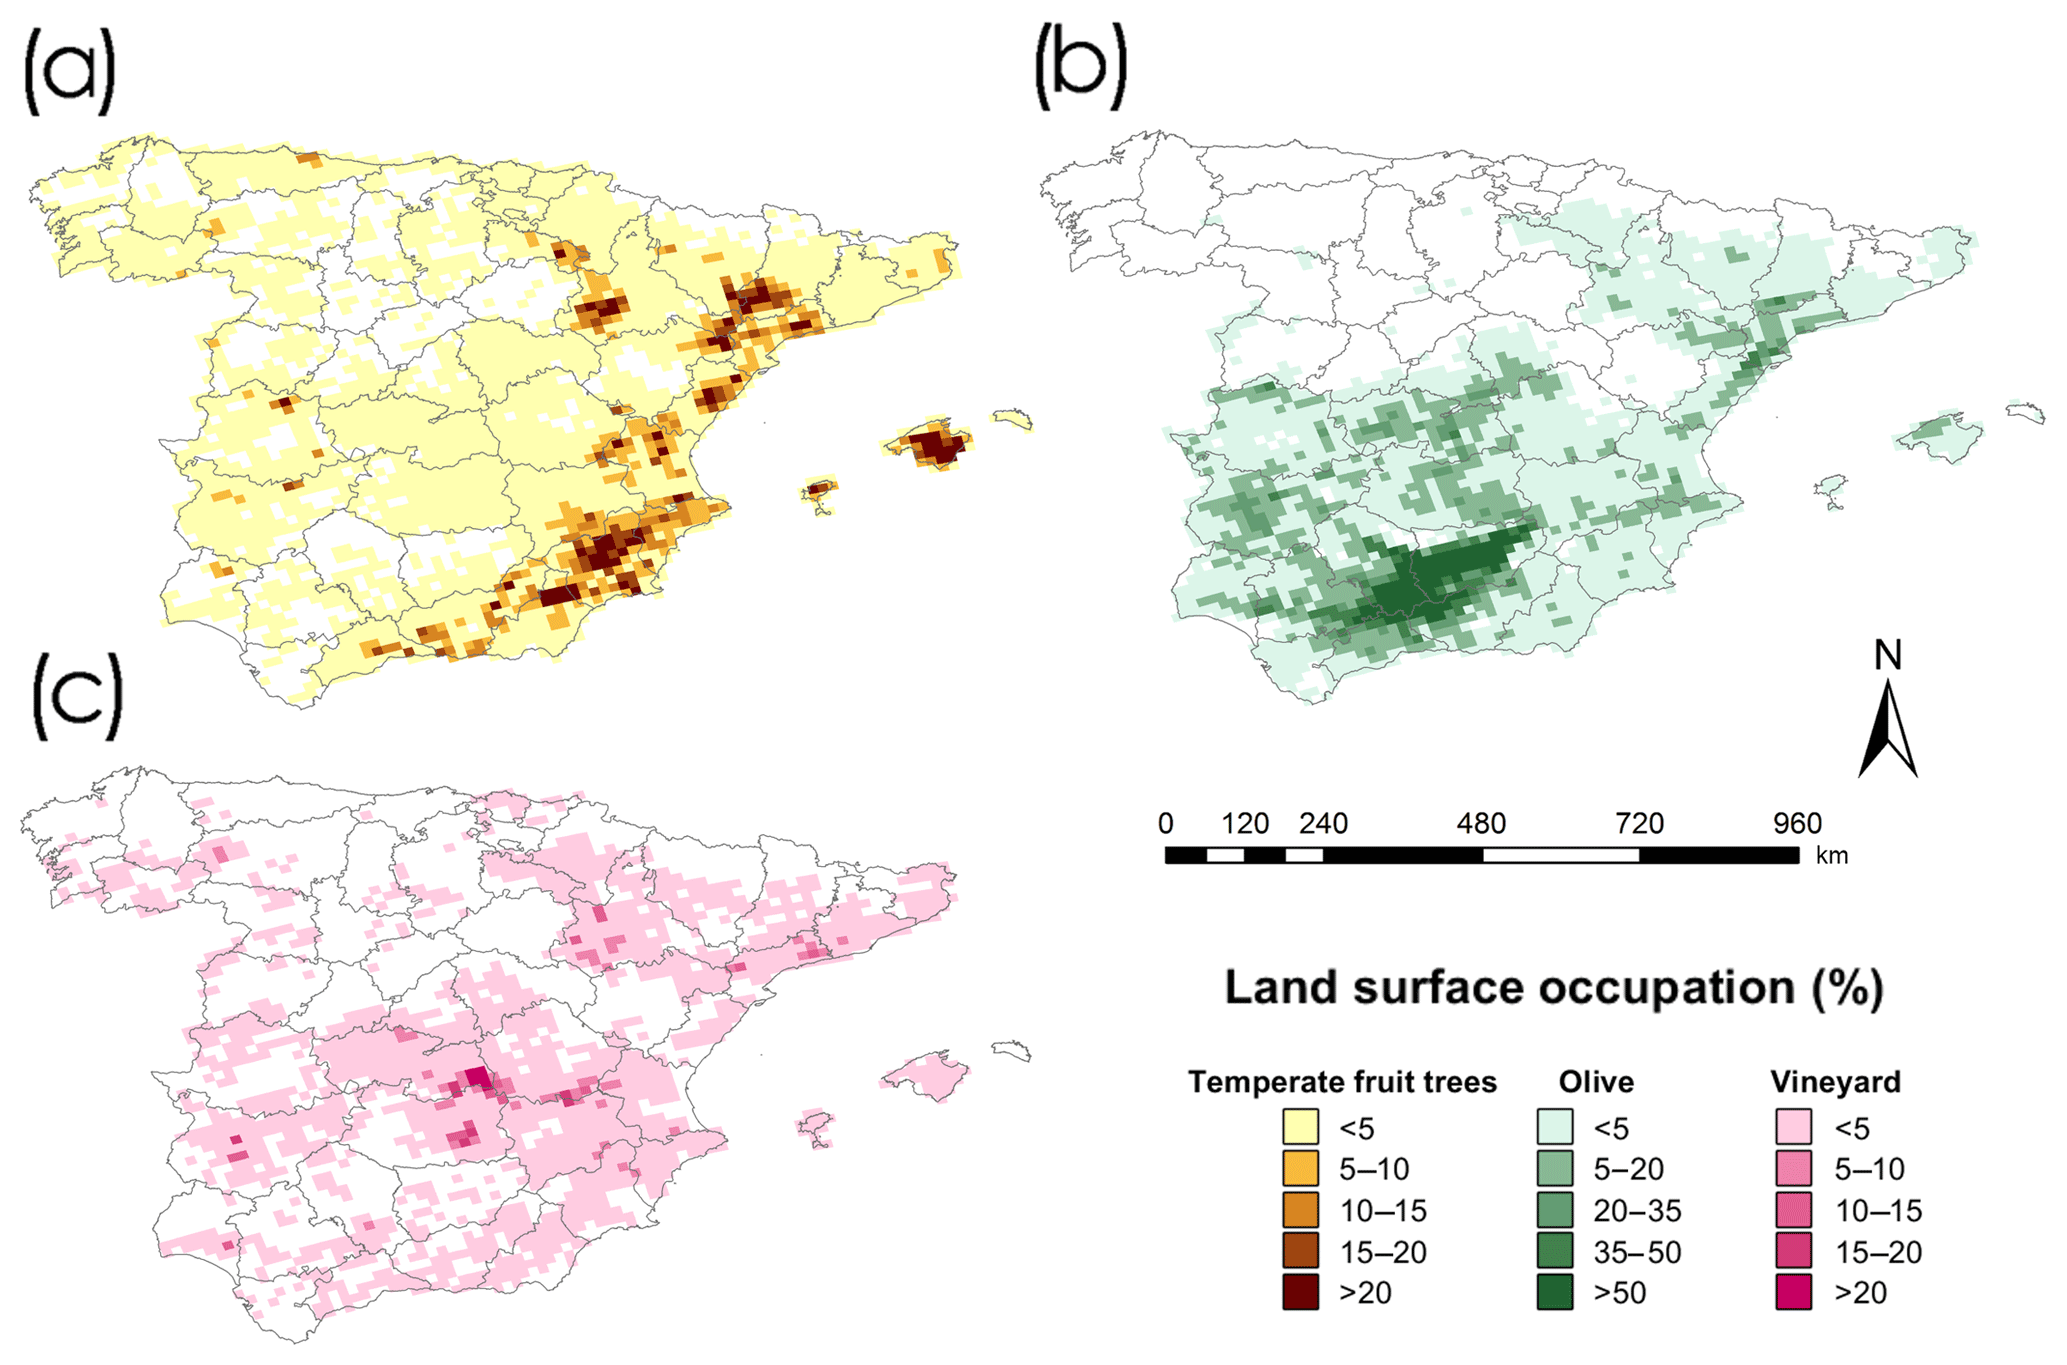 NHESS - Chilling accumulation in fruit trees in Spain under